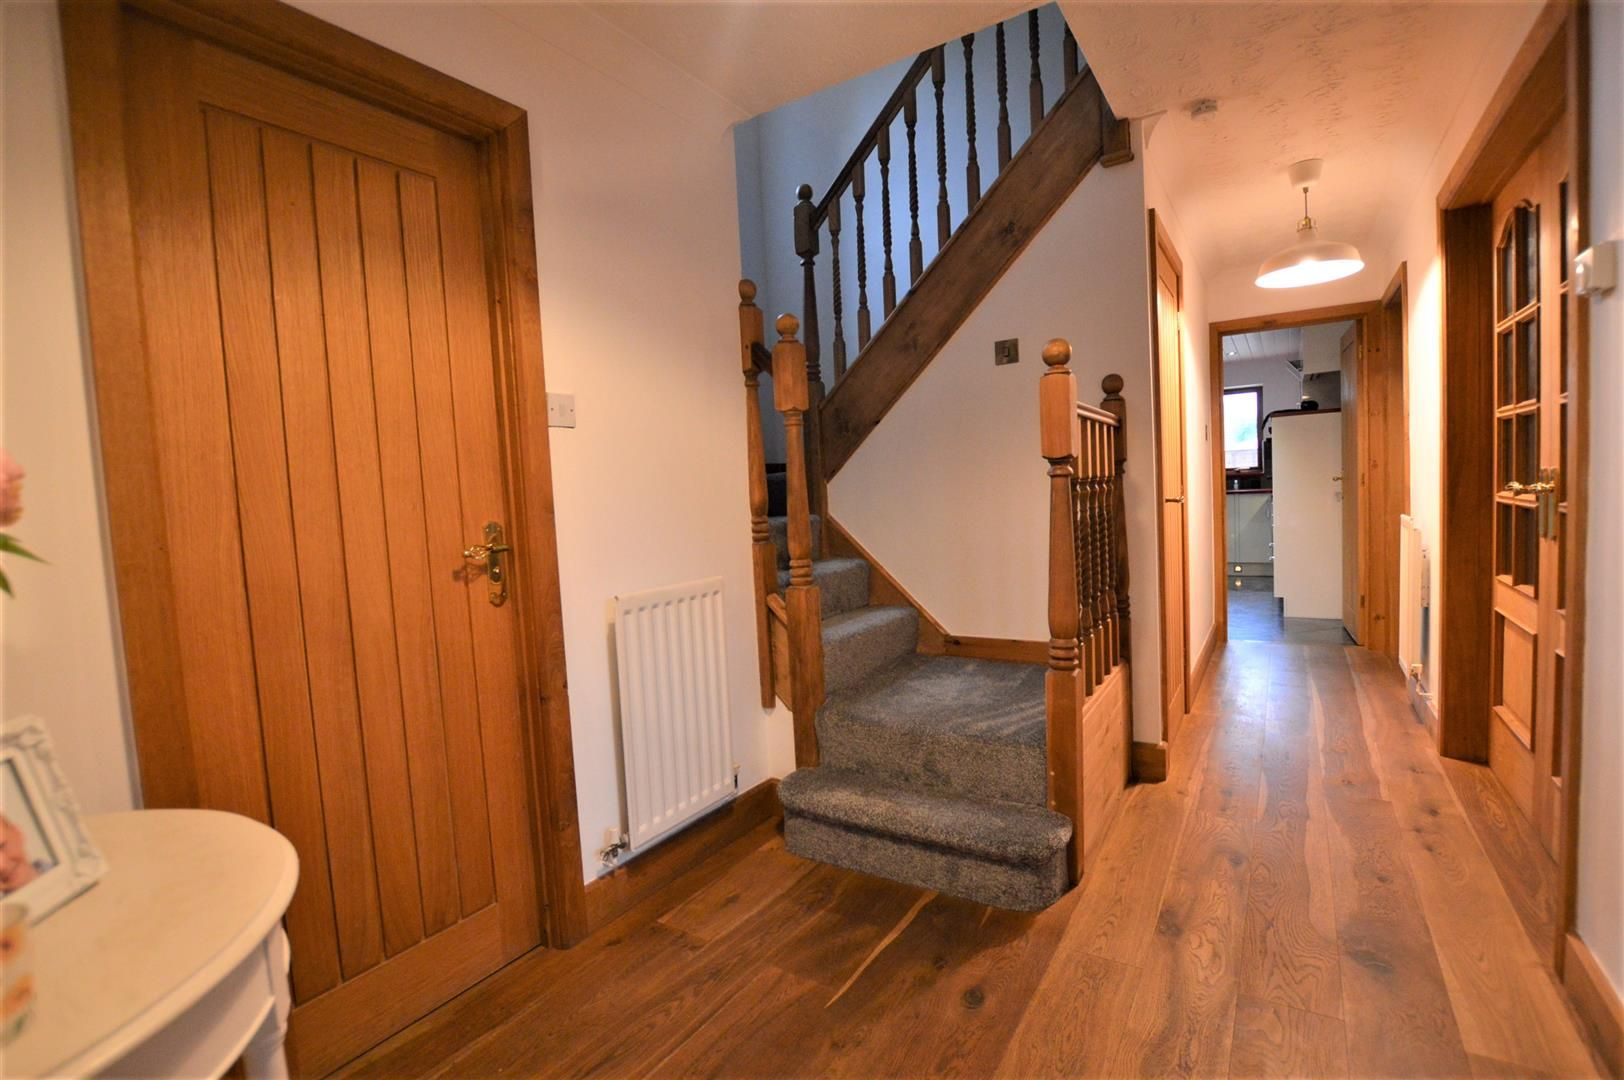 5 bed detached for sale in Leominster 5